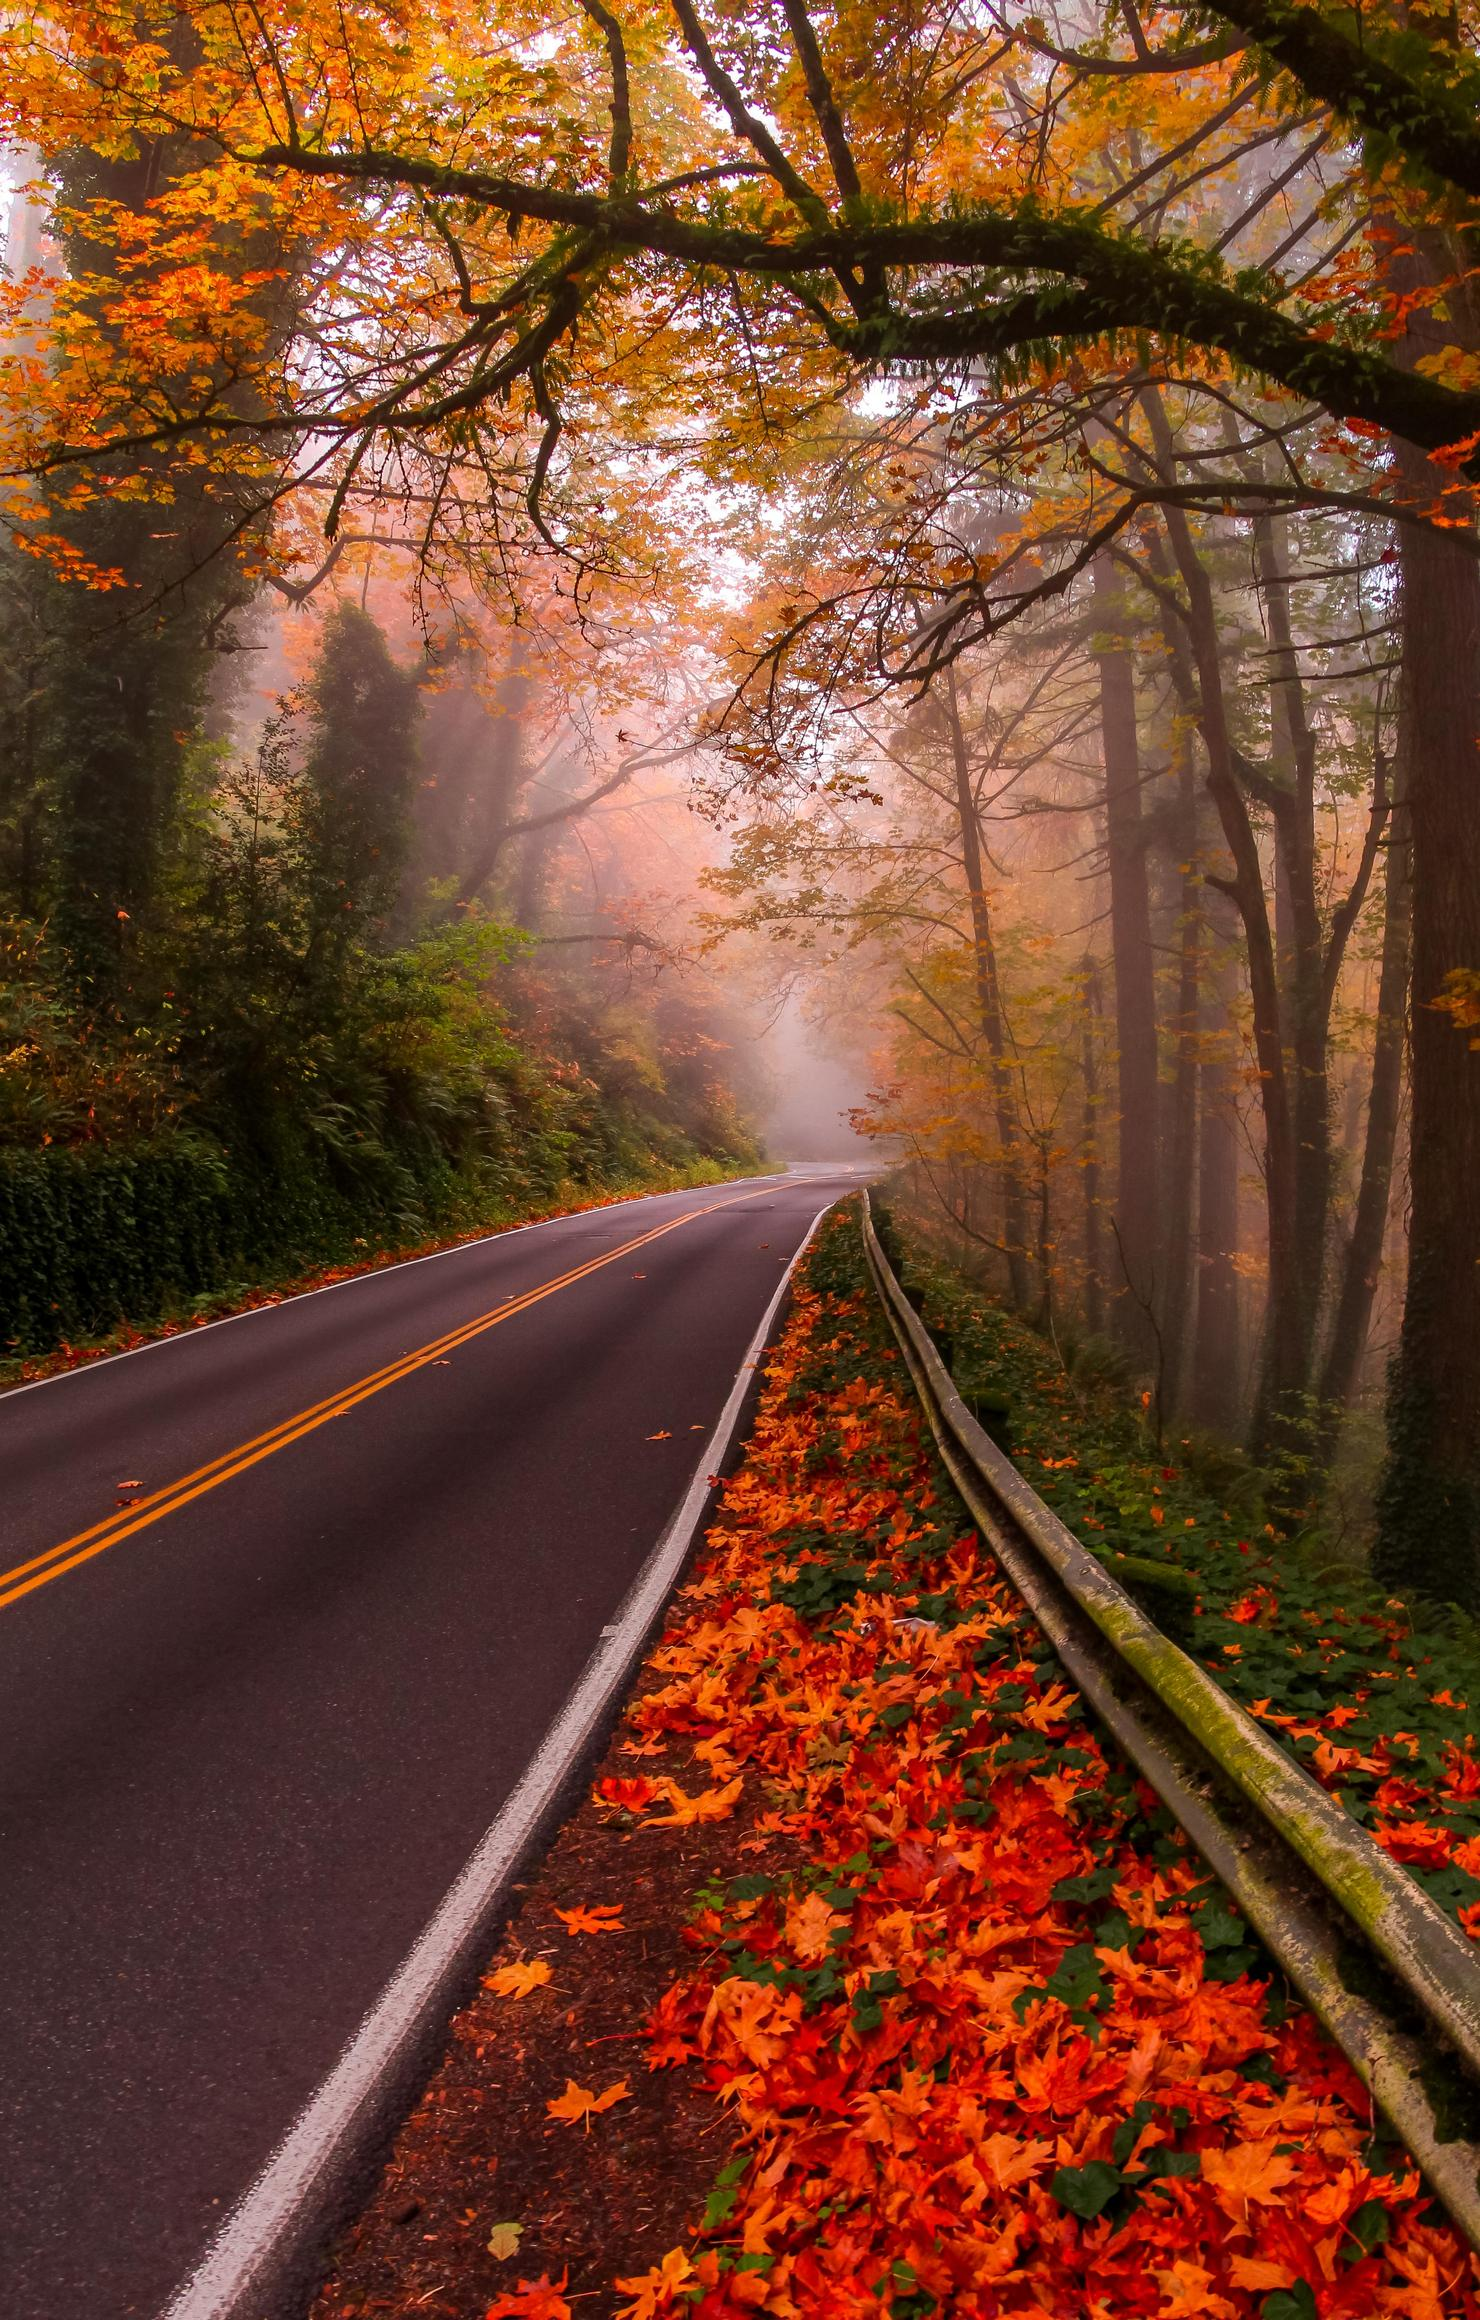 Forests Leaves Autumn Red Autum Road Forest k Wallpapers for HD